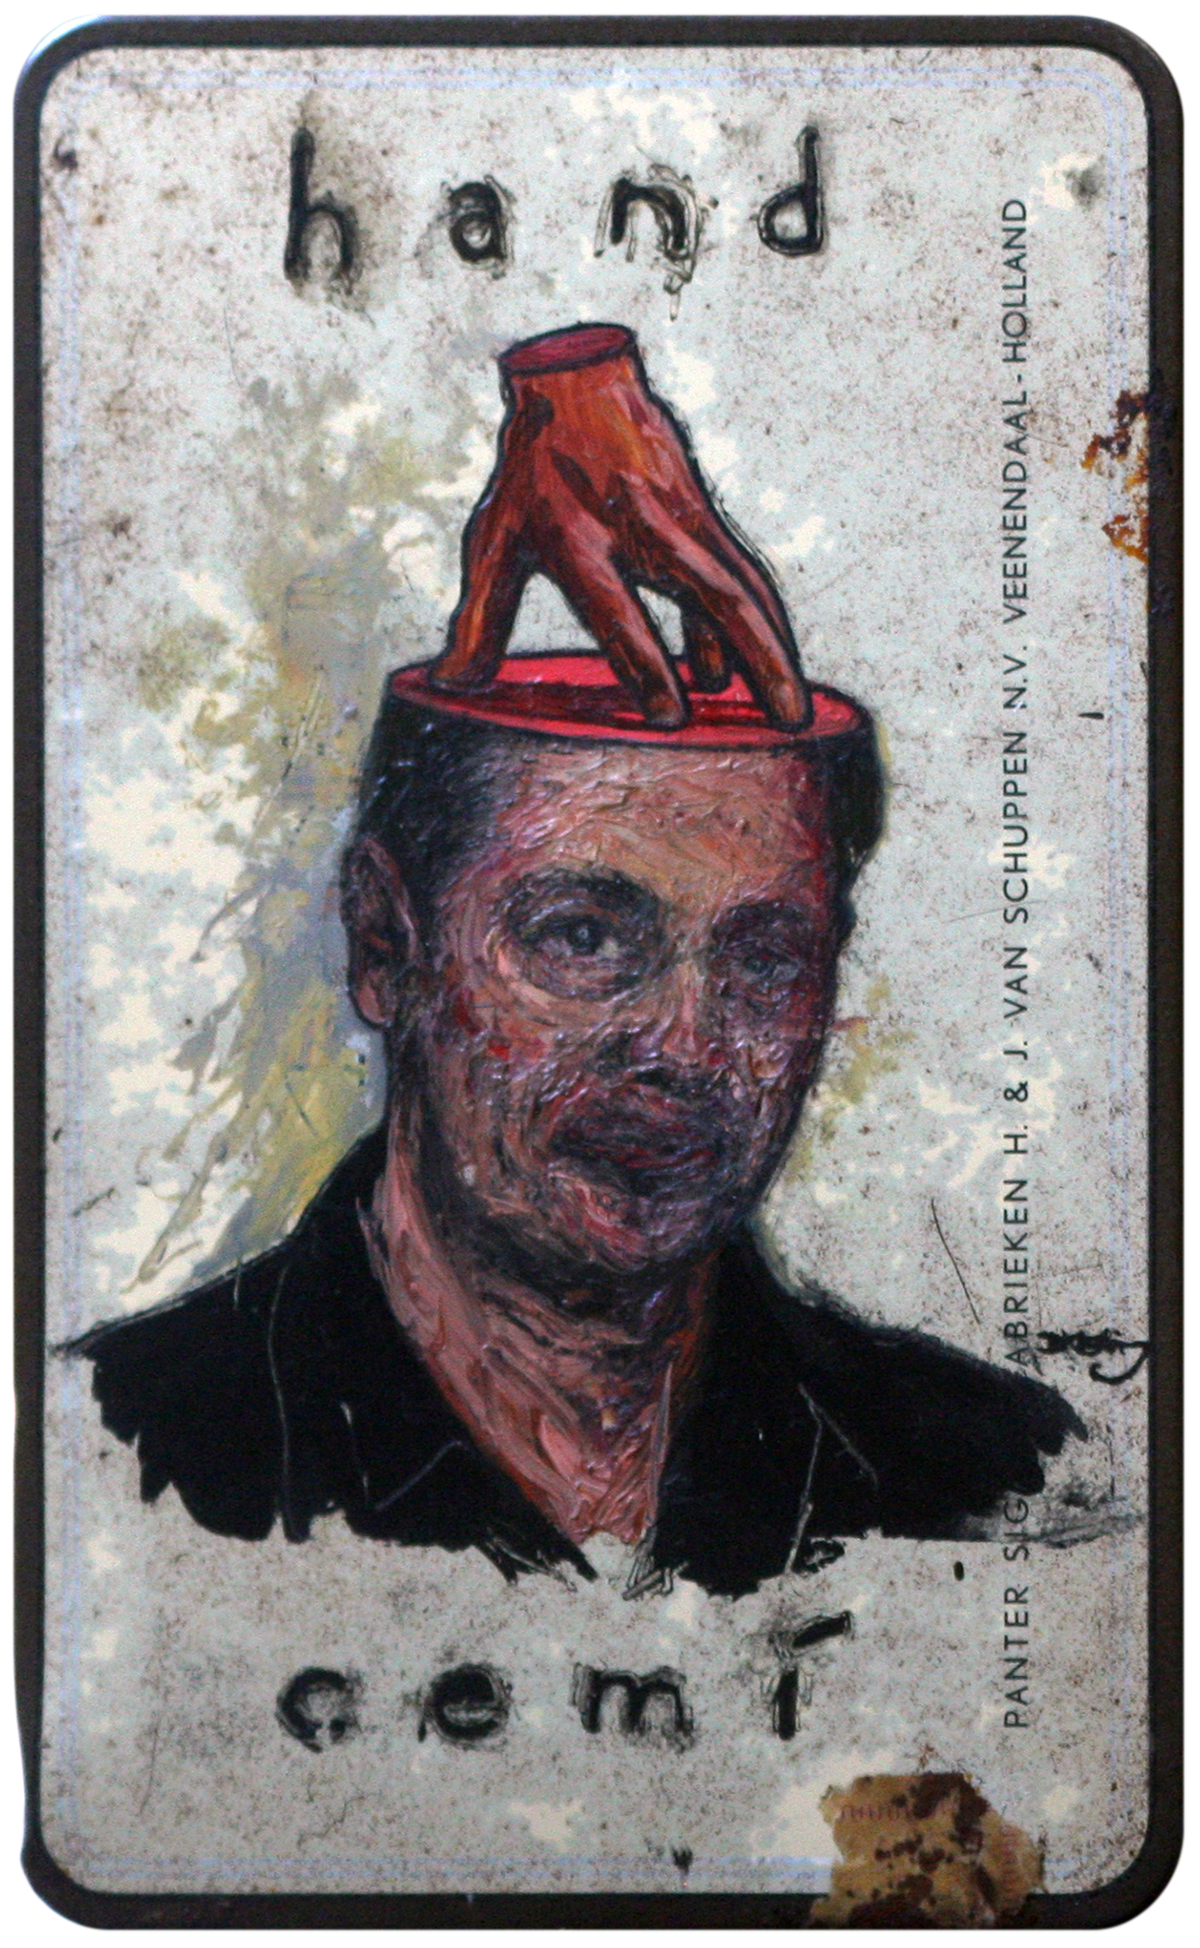 Painting of Steve Buscemi with a hand imposed standing atop